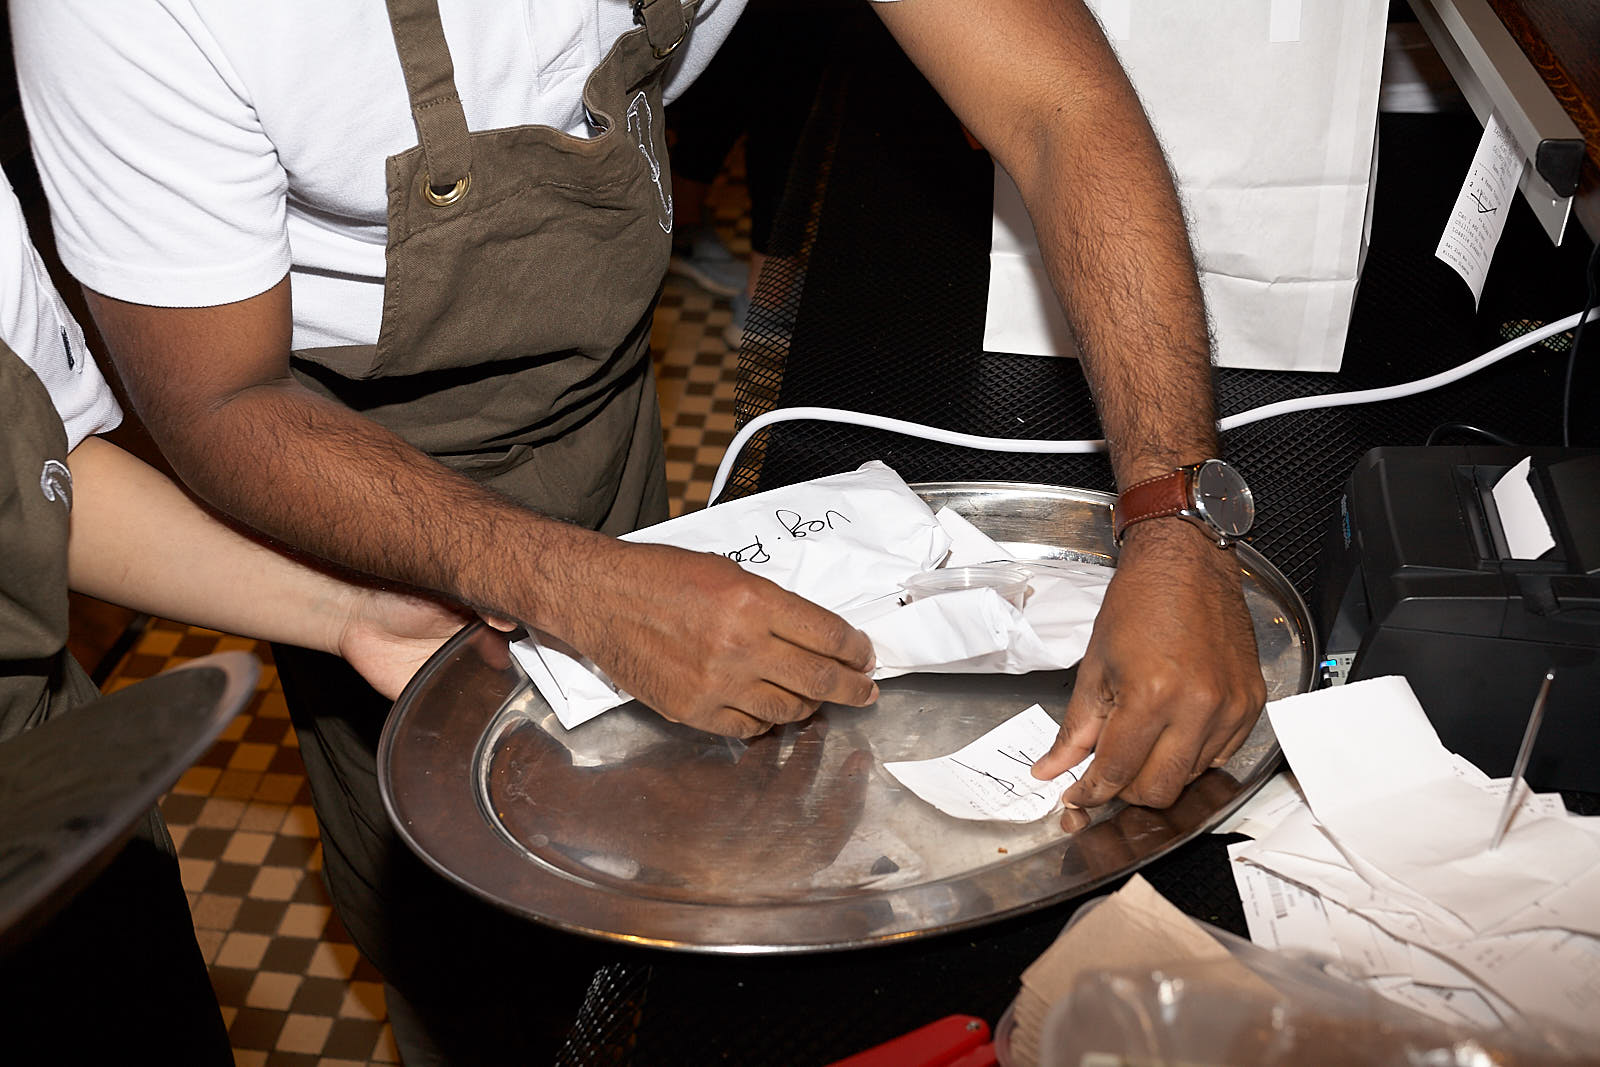 A waiter sorts through checks at Darjeeling Express last November, just after the restaurant first opened for guests. It's the second incarnation of chef Asma Khan's Soho Indian restaurant which has won critical accliam